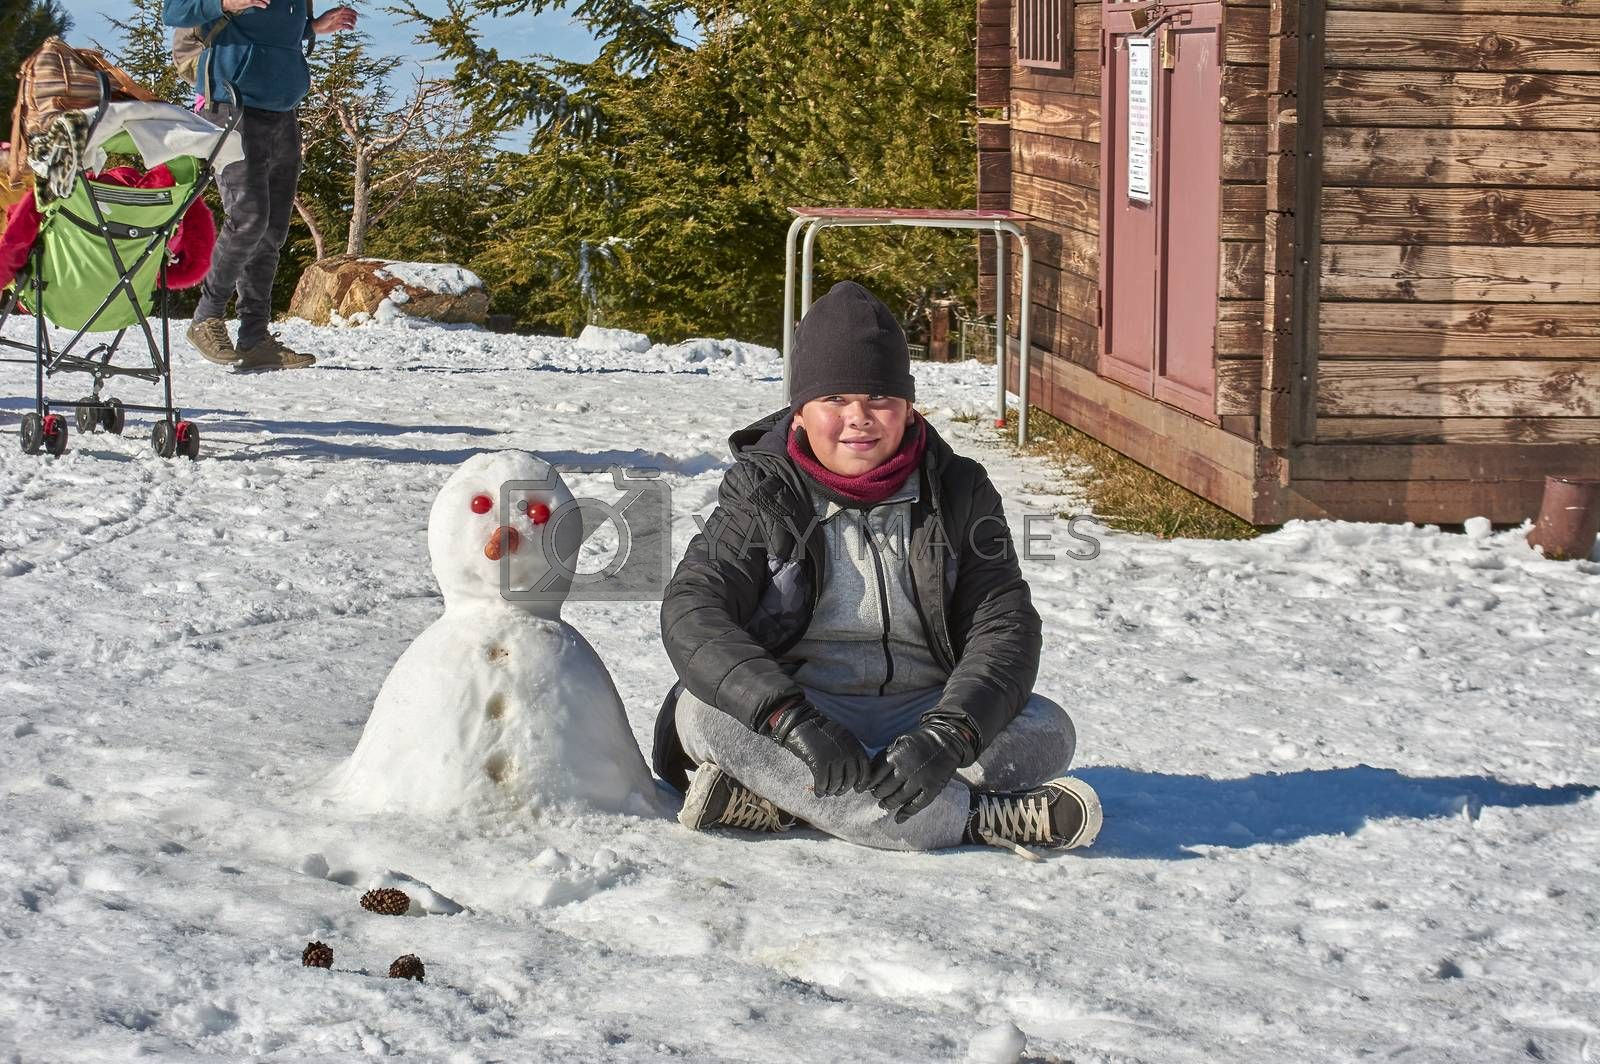 Family, boy, smiling, posing with snowman, playing and having fun in snow, ski resort, sierra nevada, granada, andalusia, spain